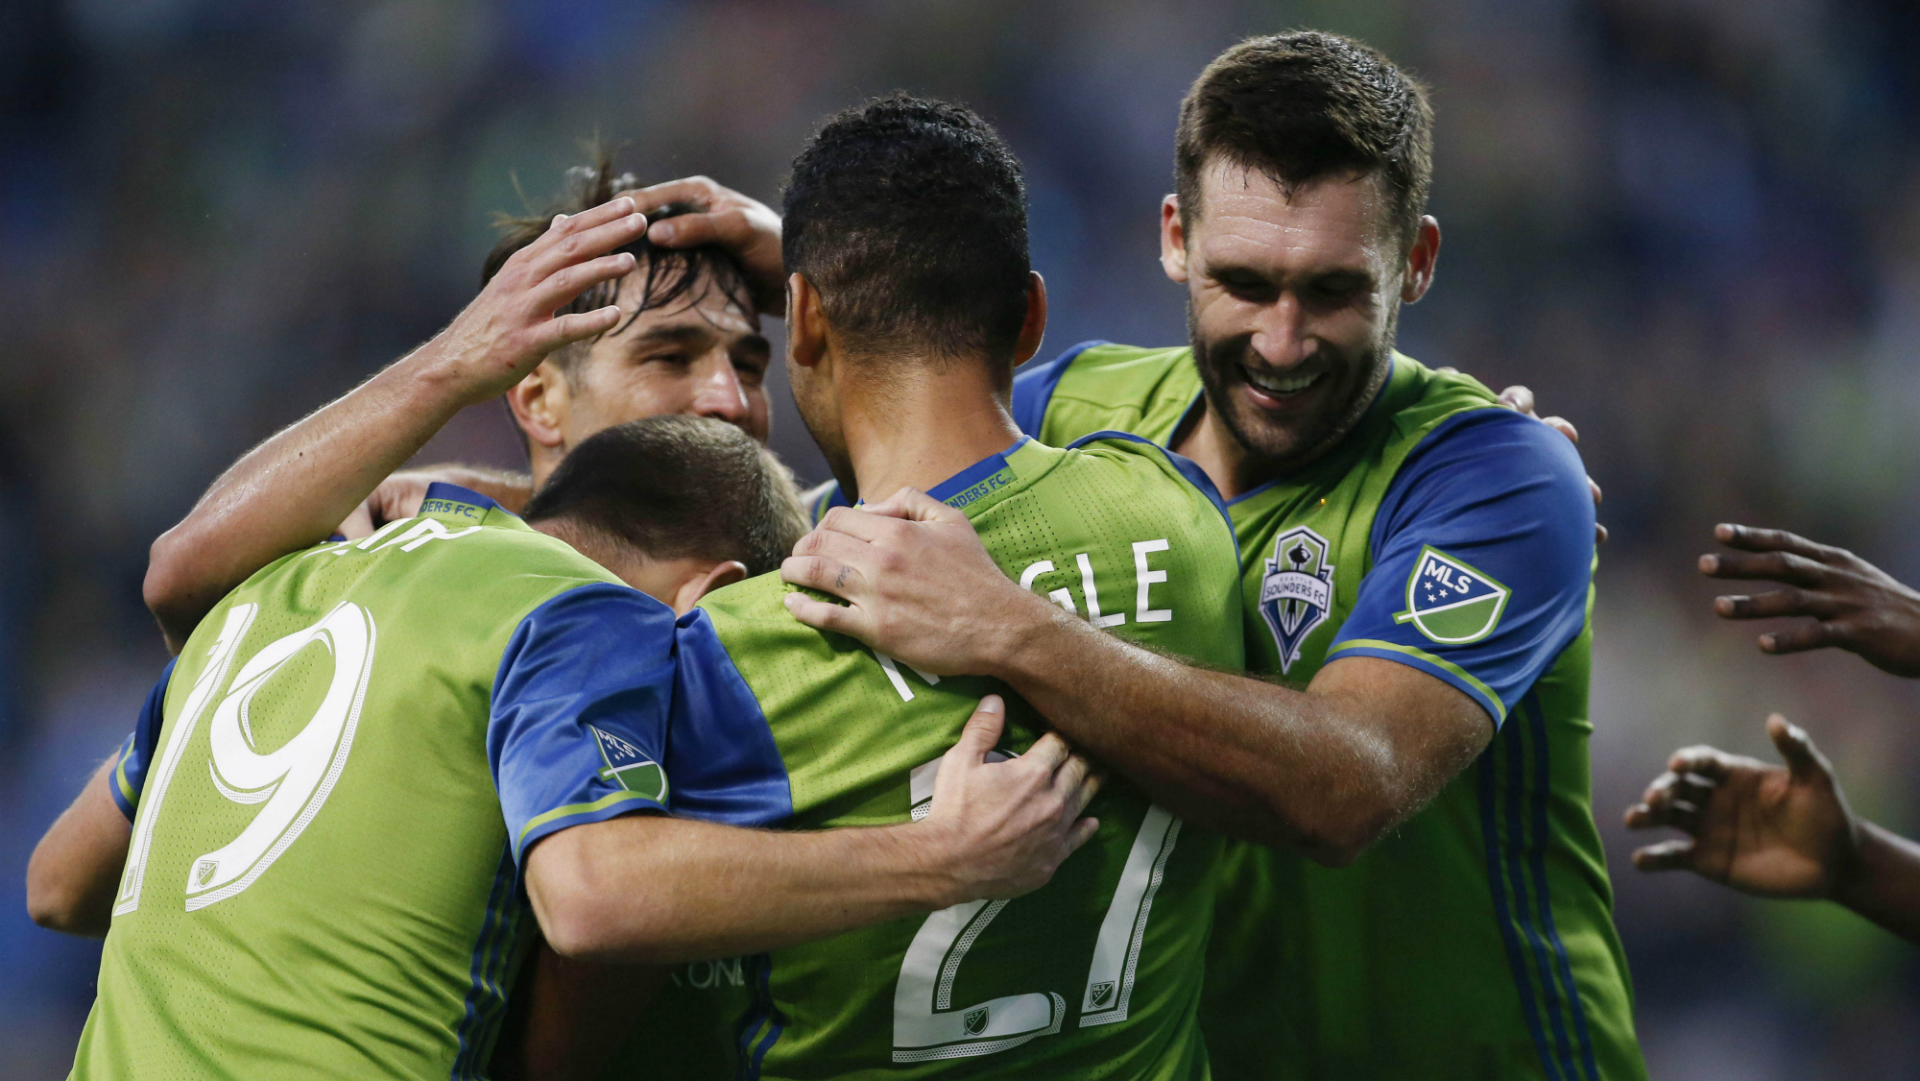 Harry-shipp-lamar-neagle-will-bruin-seattle-sounders_1q3834v0u4uniz2psw1p0038b